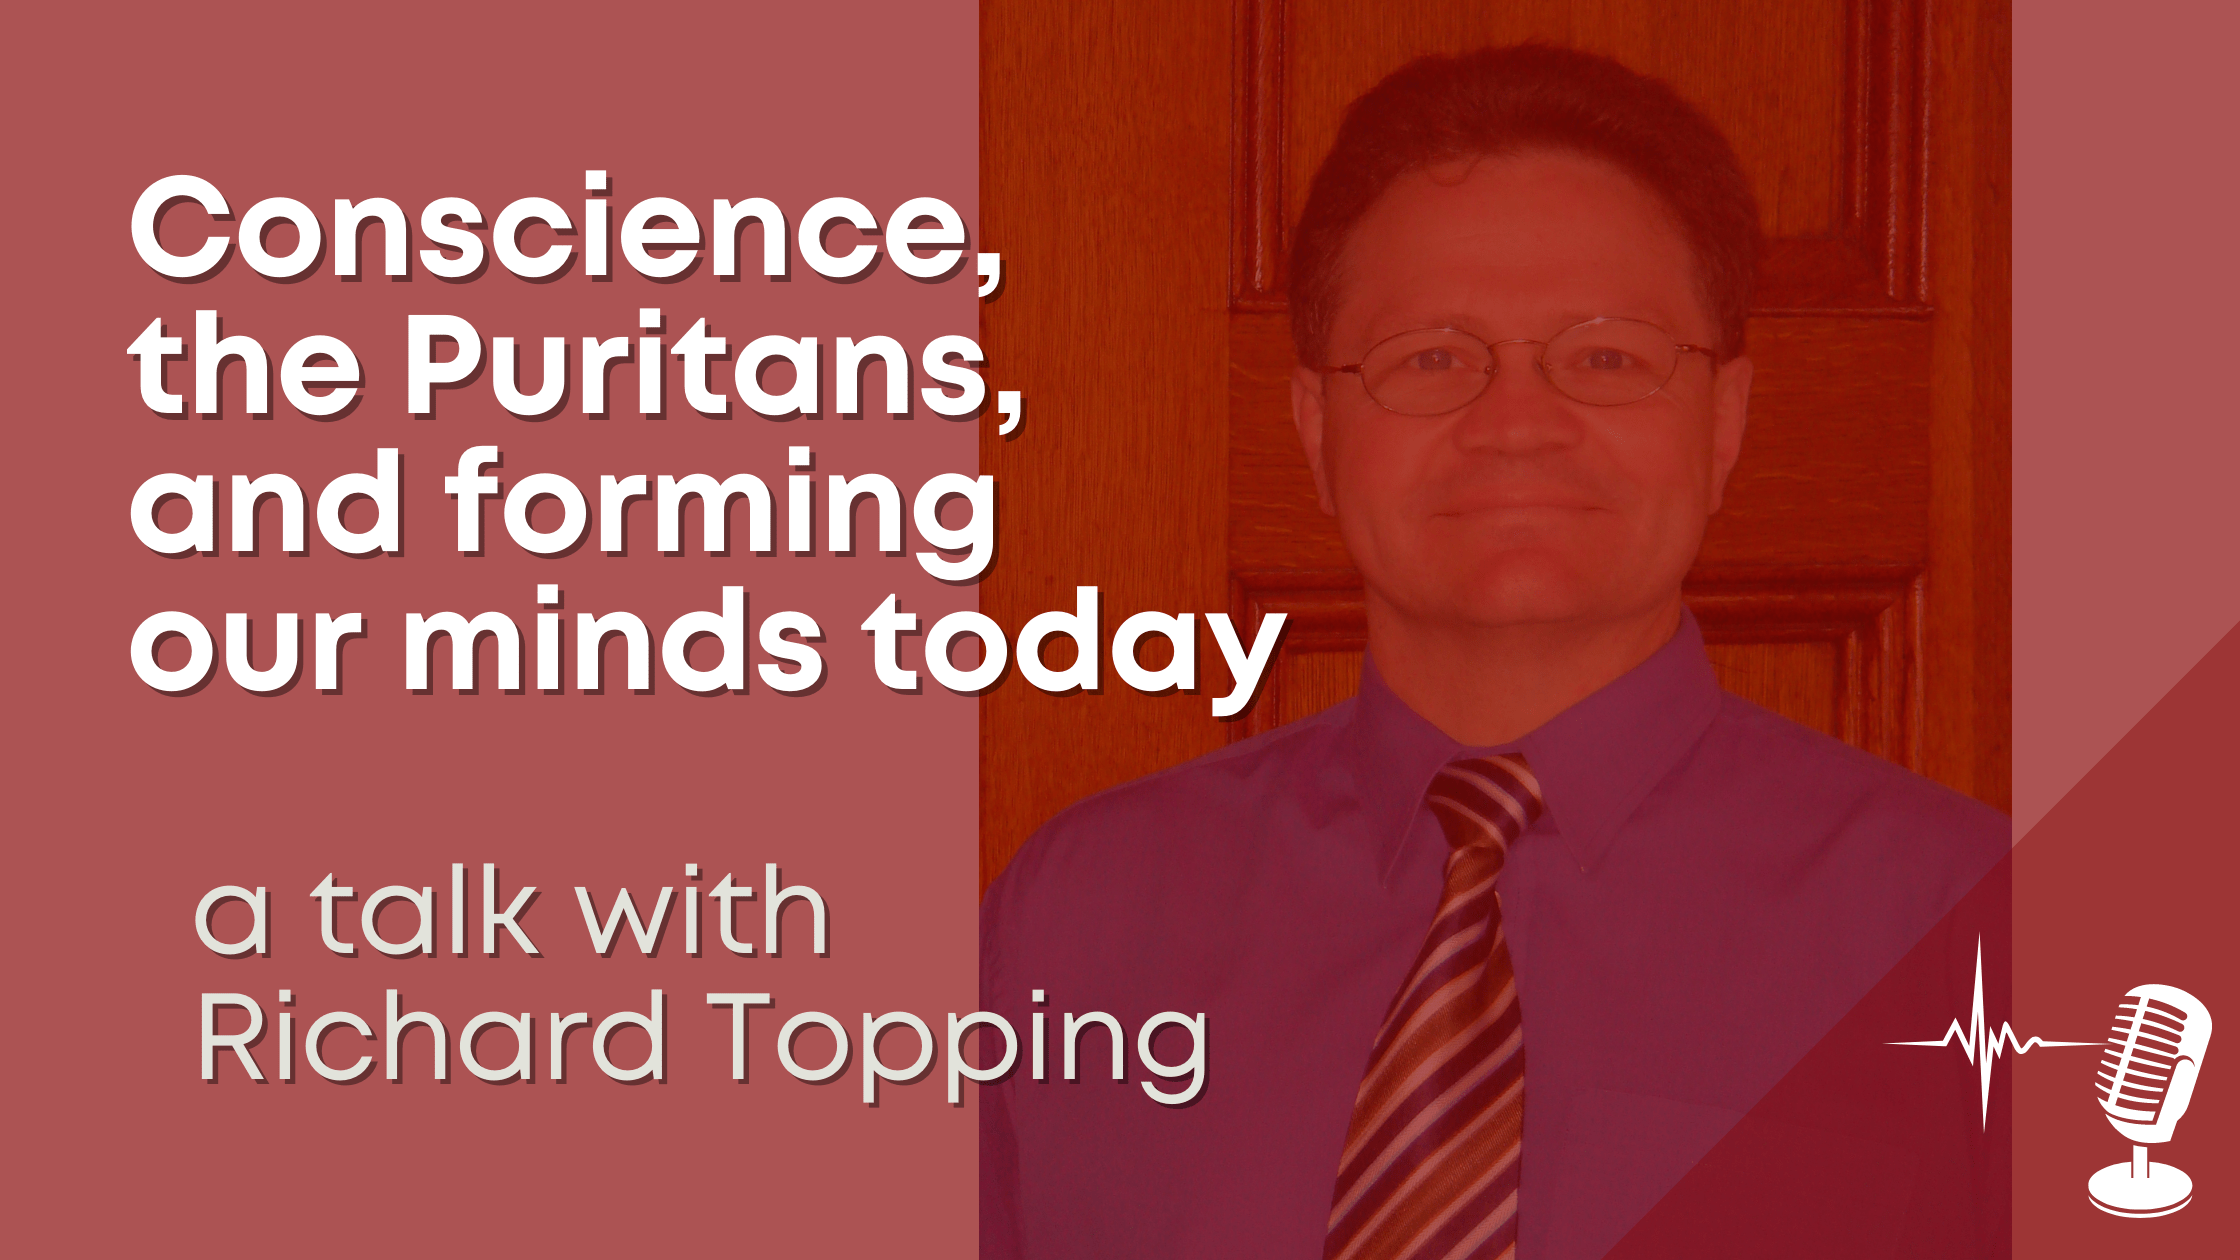 Conscience, the Puritans, and forming our minds today - a talk with Richard Topping